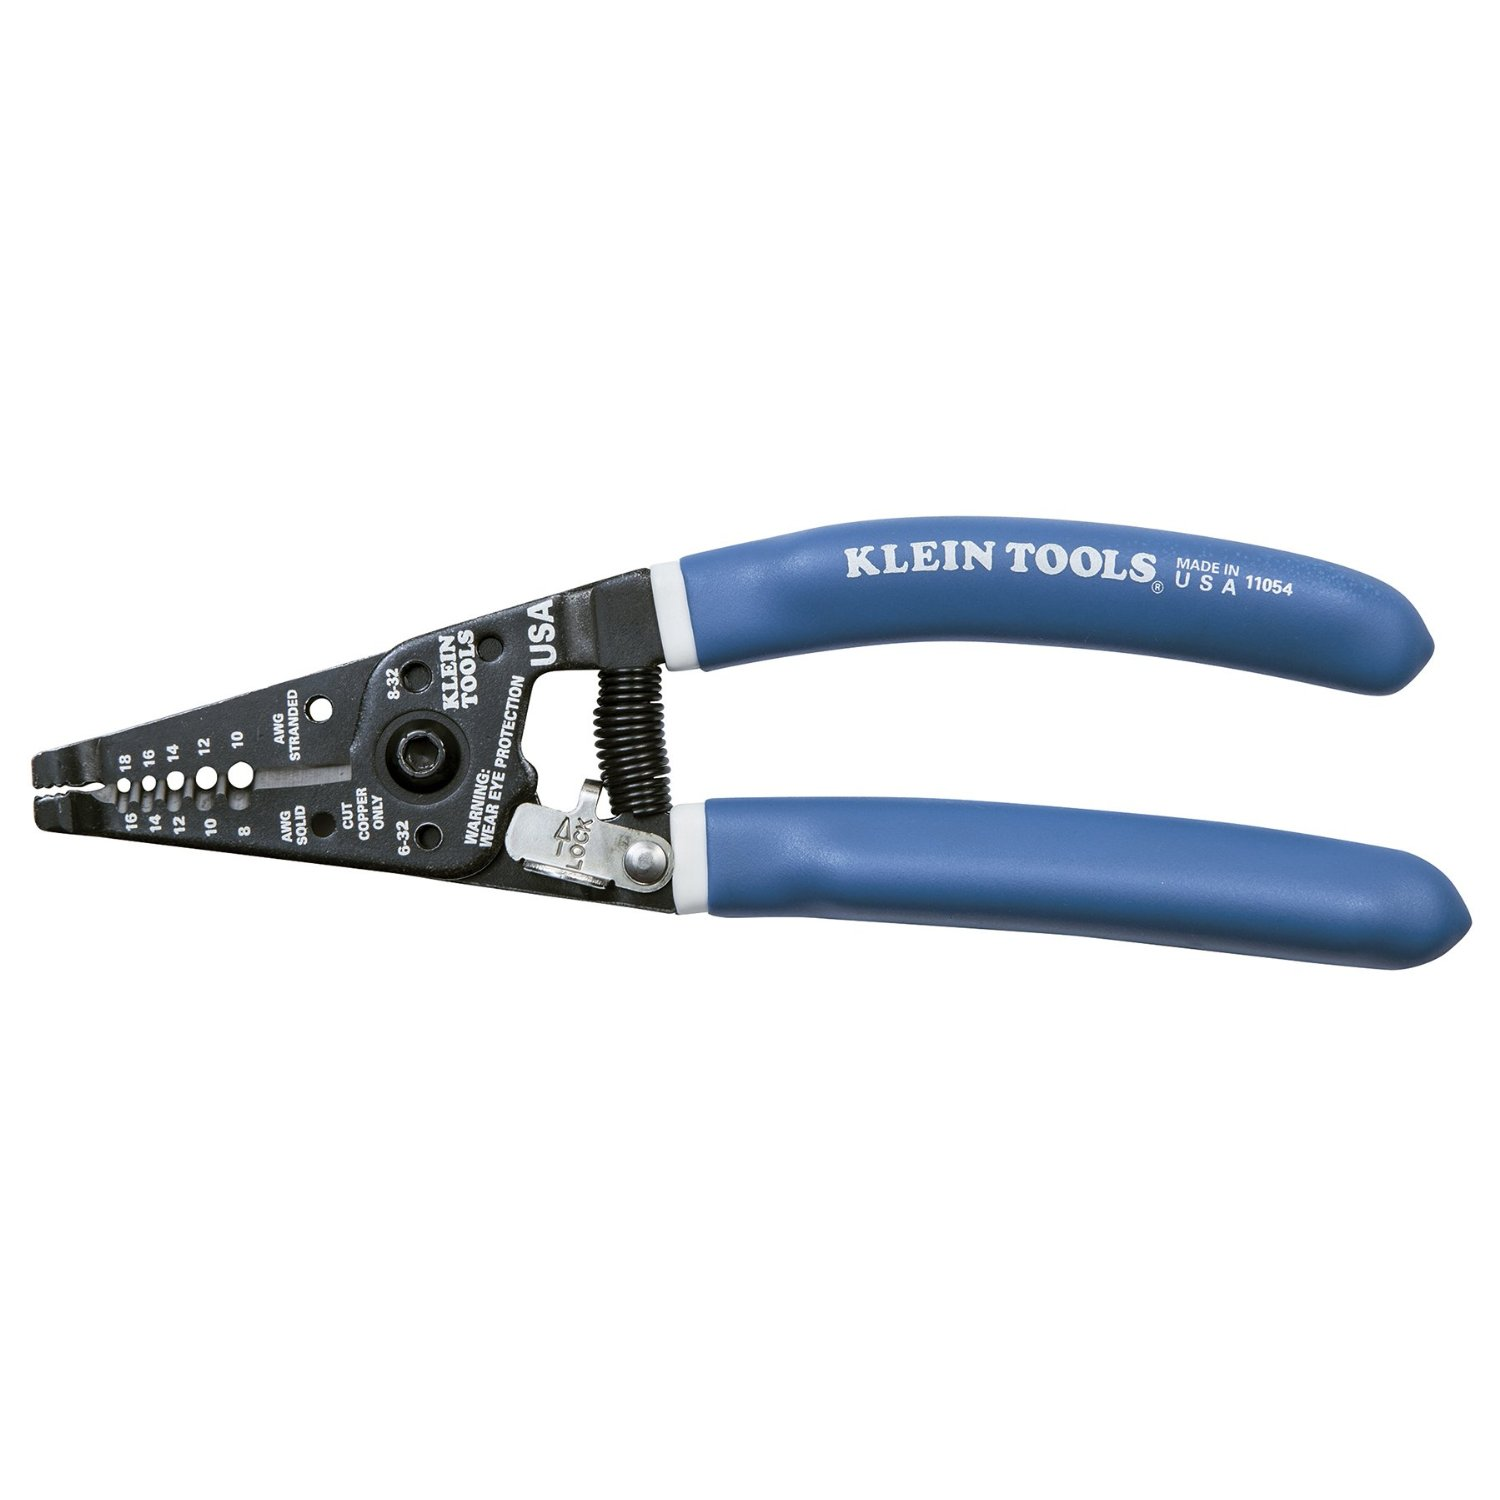 Klein Tools Wire Stripper/Cutter